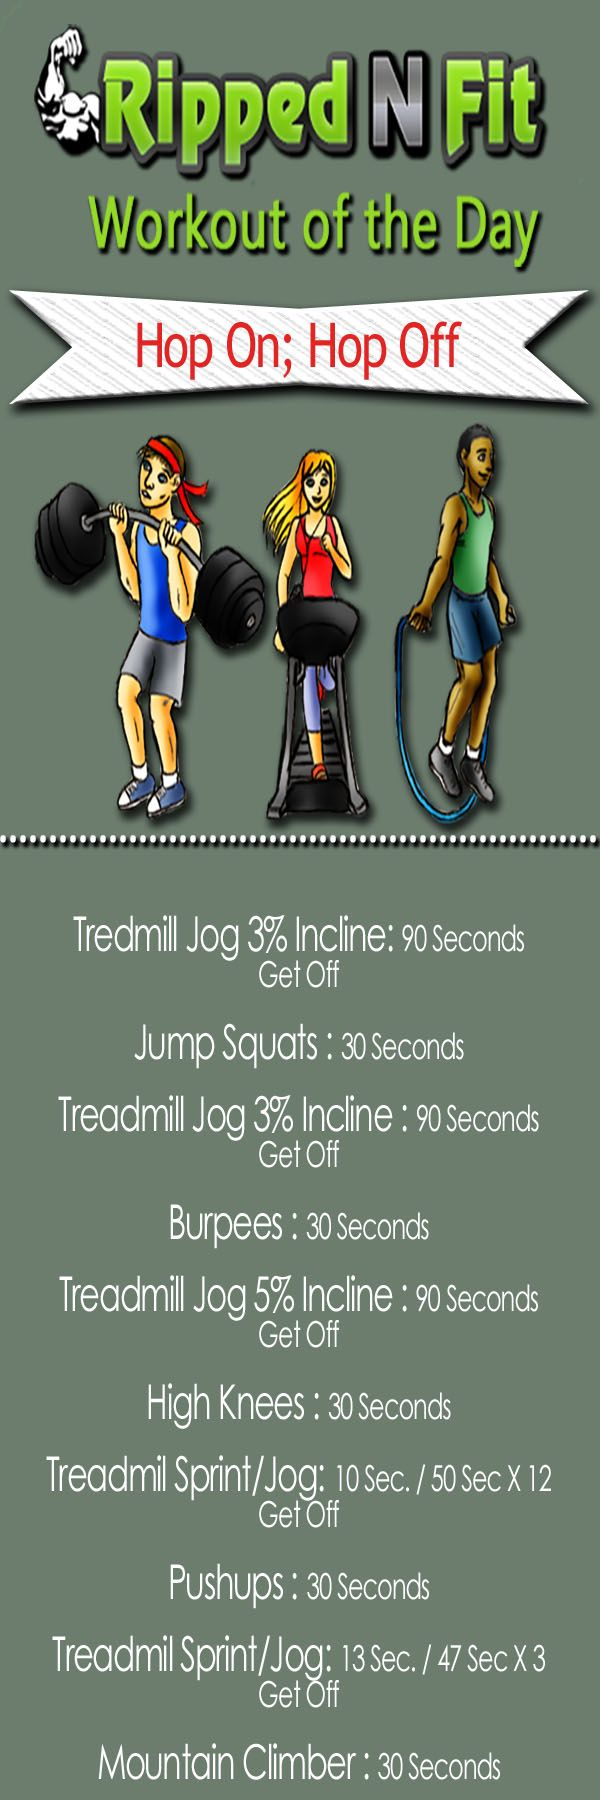 Today's workout is a combination of cardio and calisthenics. If you think the treadmill is boring wait til you try this one. You will simple follow the protocol, hop off do the bodyweight exercise, then hop back on the treadmill! Workout of the Day Posts You May LikeWorkout of the Day: Reinventing the WheelWorkout of the Day: Muscle HustleWorkout of